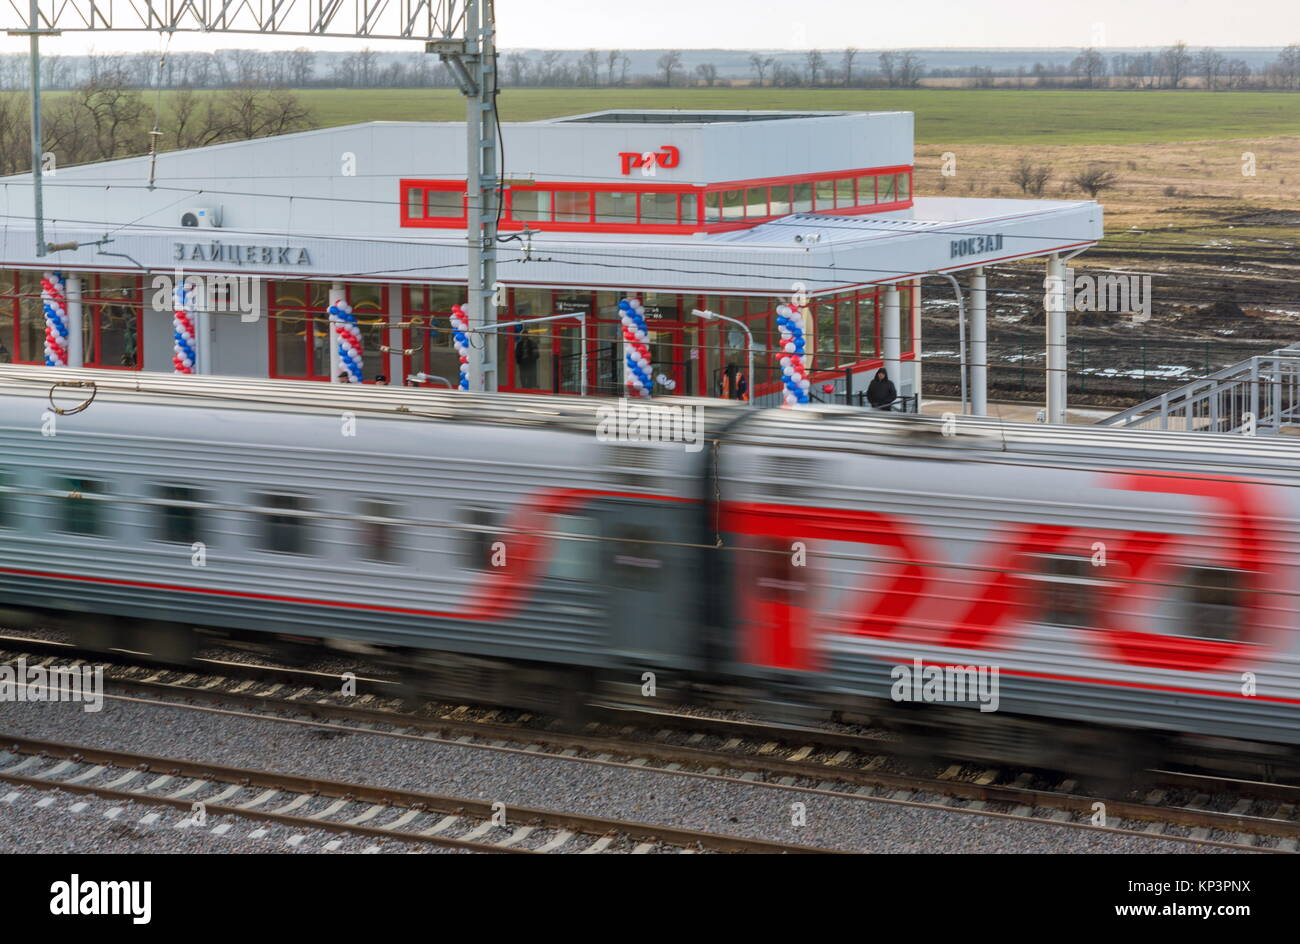 The cost of the Voronezh railway section bypassing Ukraine will be 22 billion rubles 100